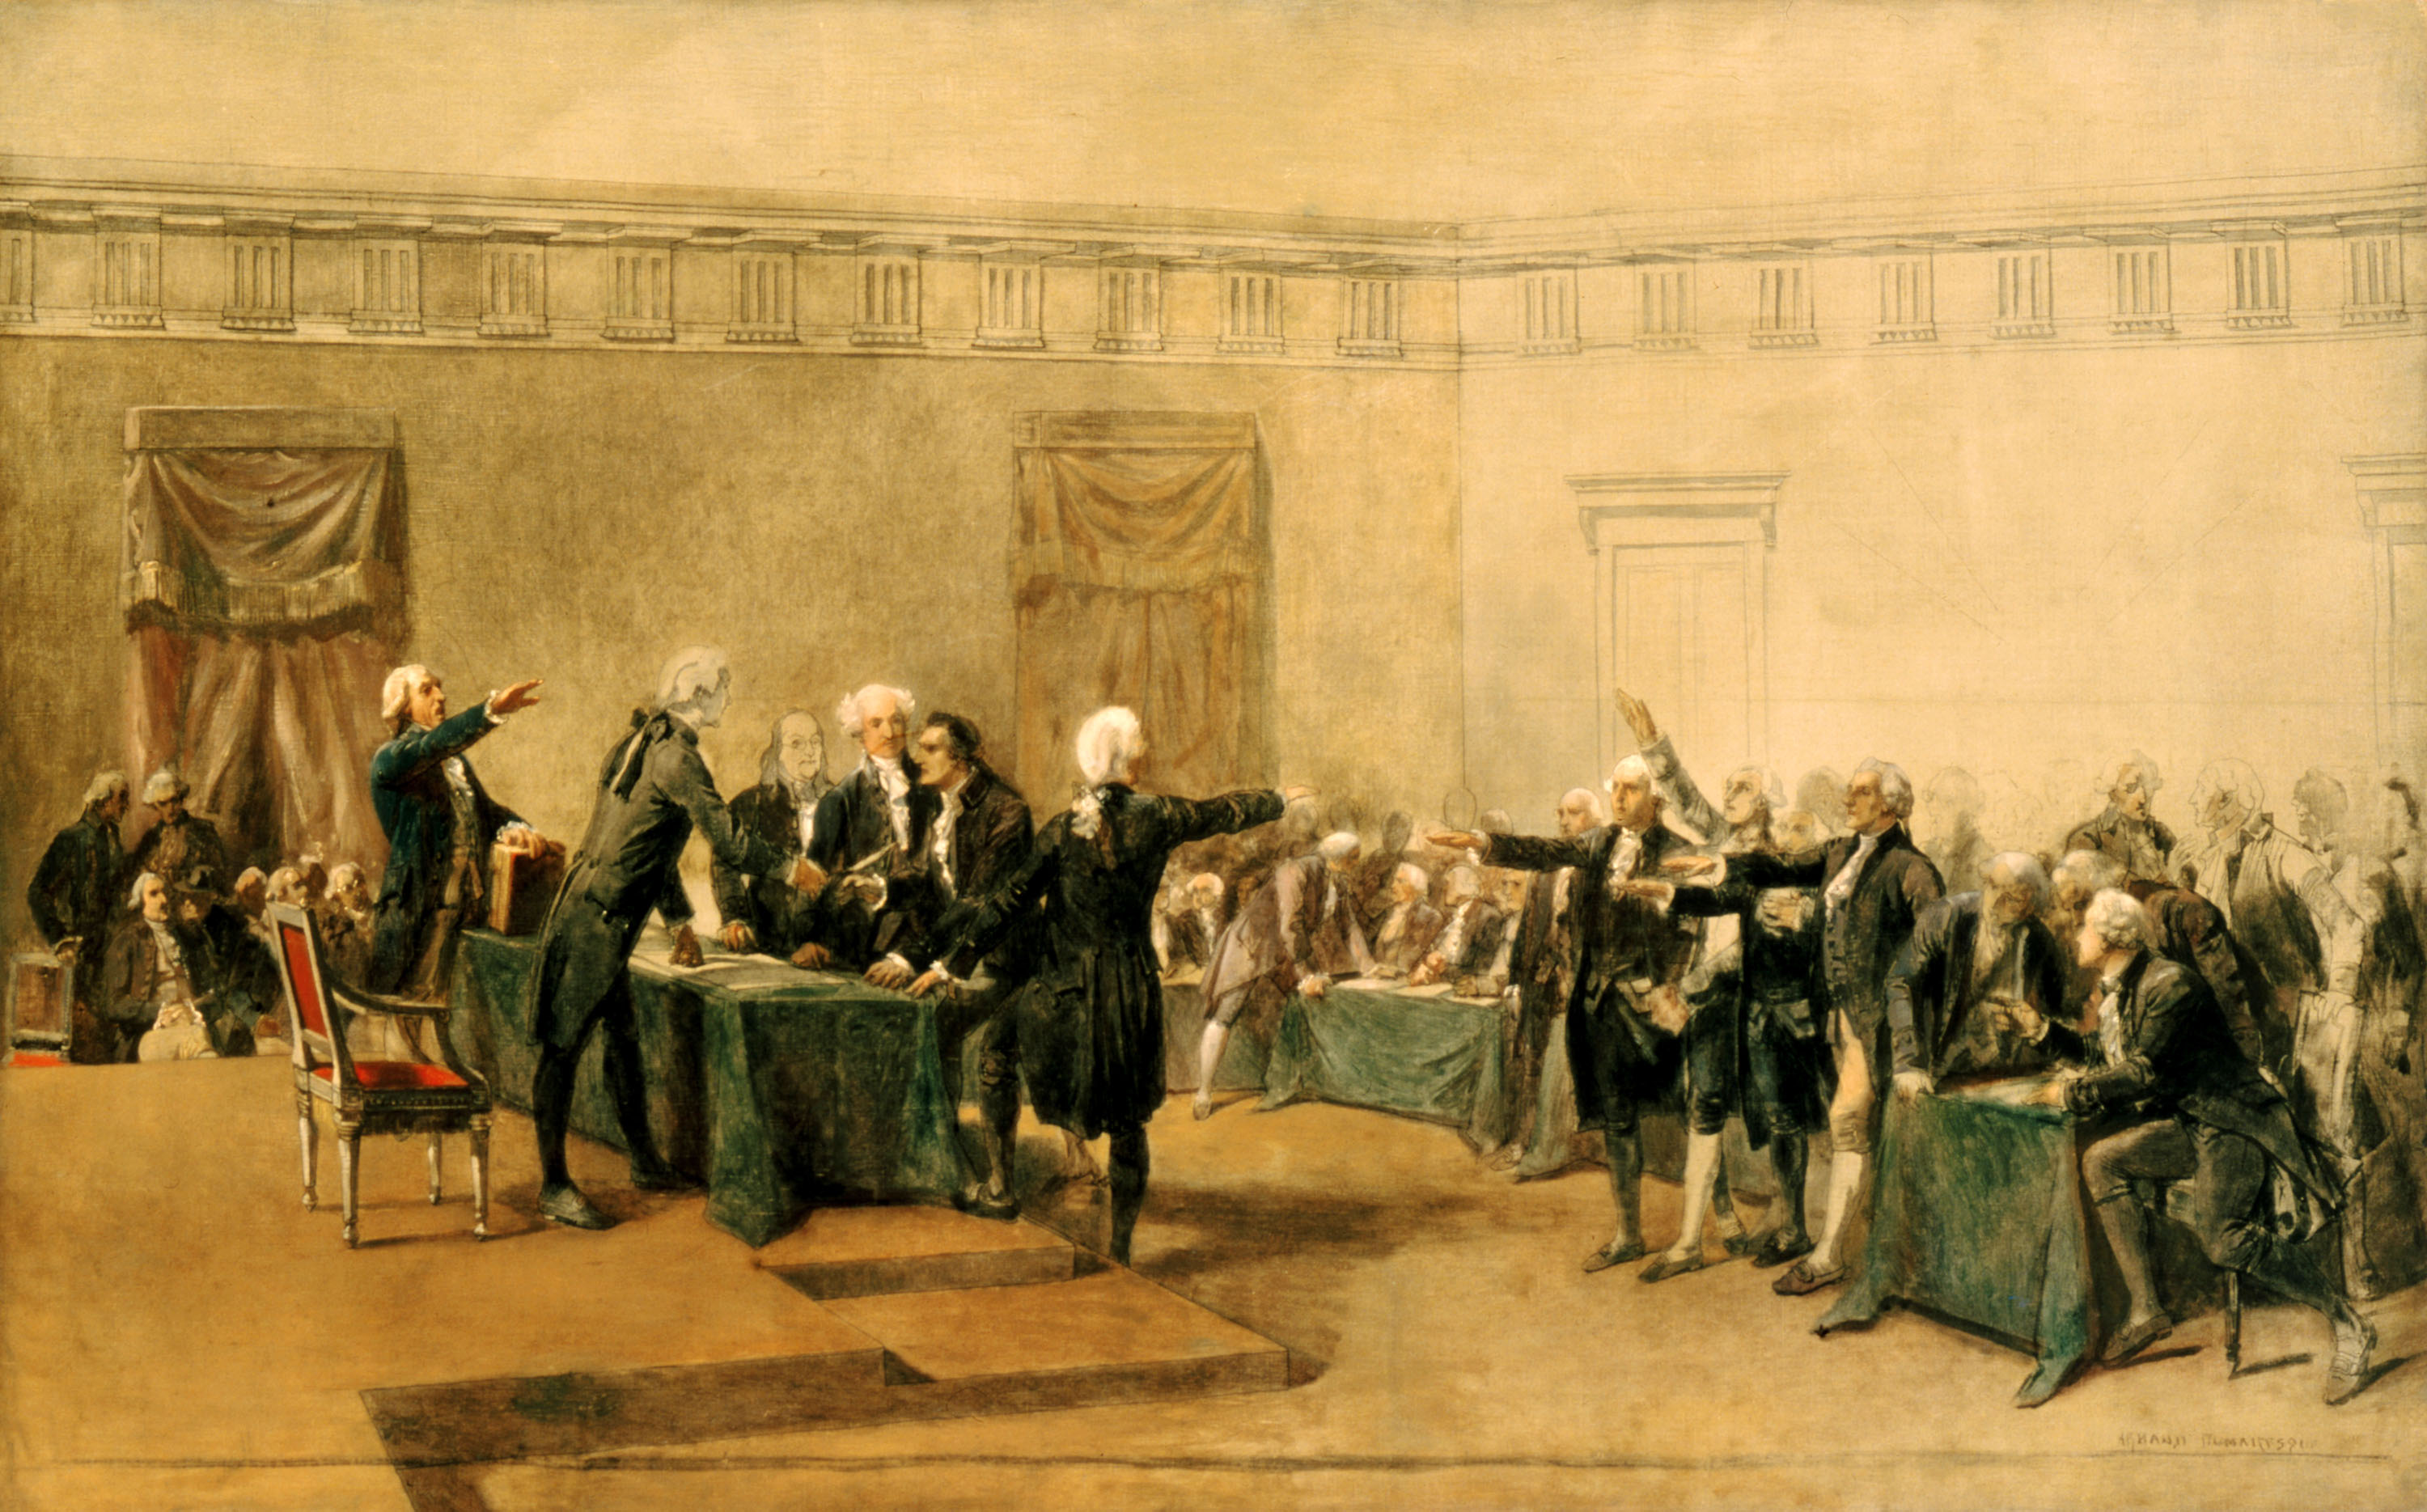 Signing of Declaration of Independence, Armand-Dumaresq, c1873